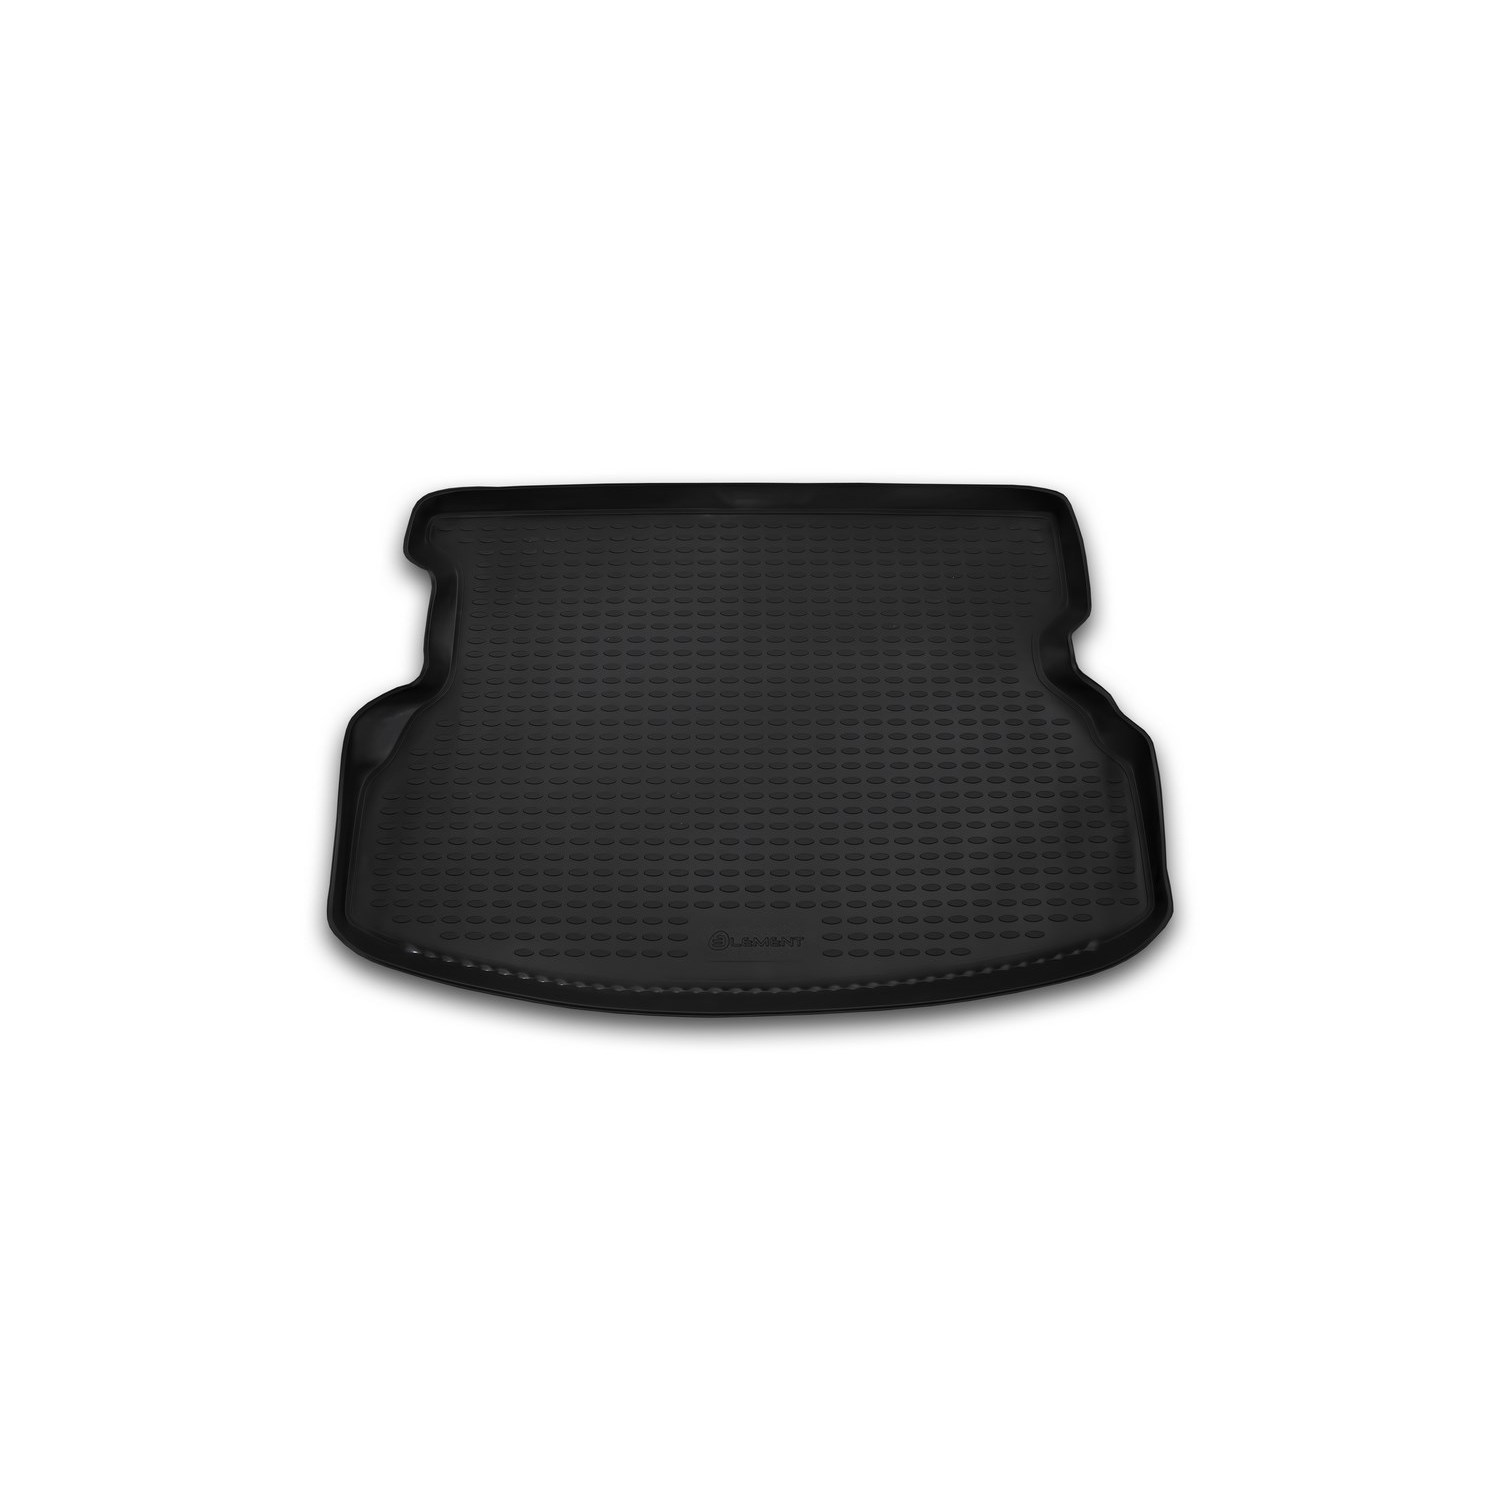 Trunk Mat For FORD Escape 2007, The Cross. NLC.16.24.B13